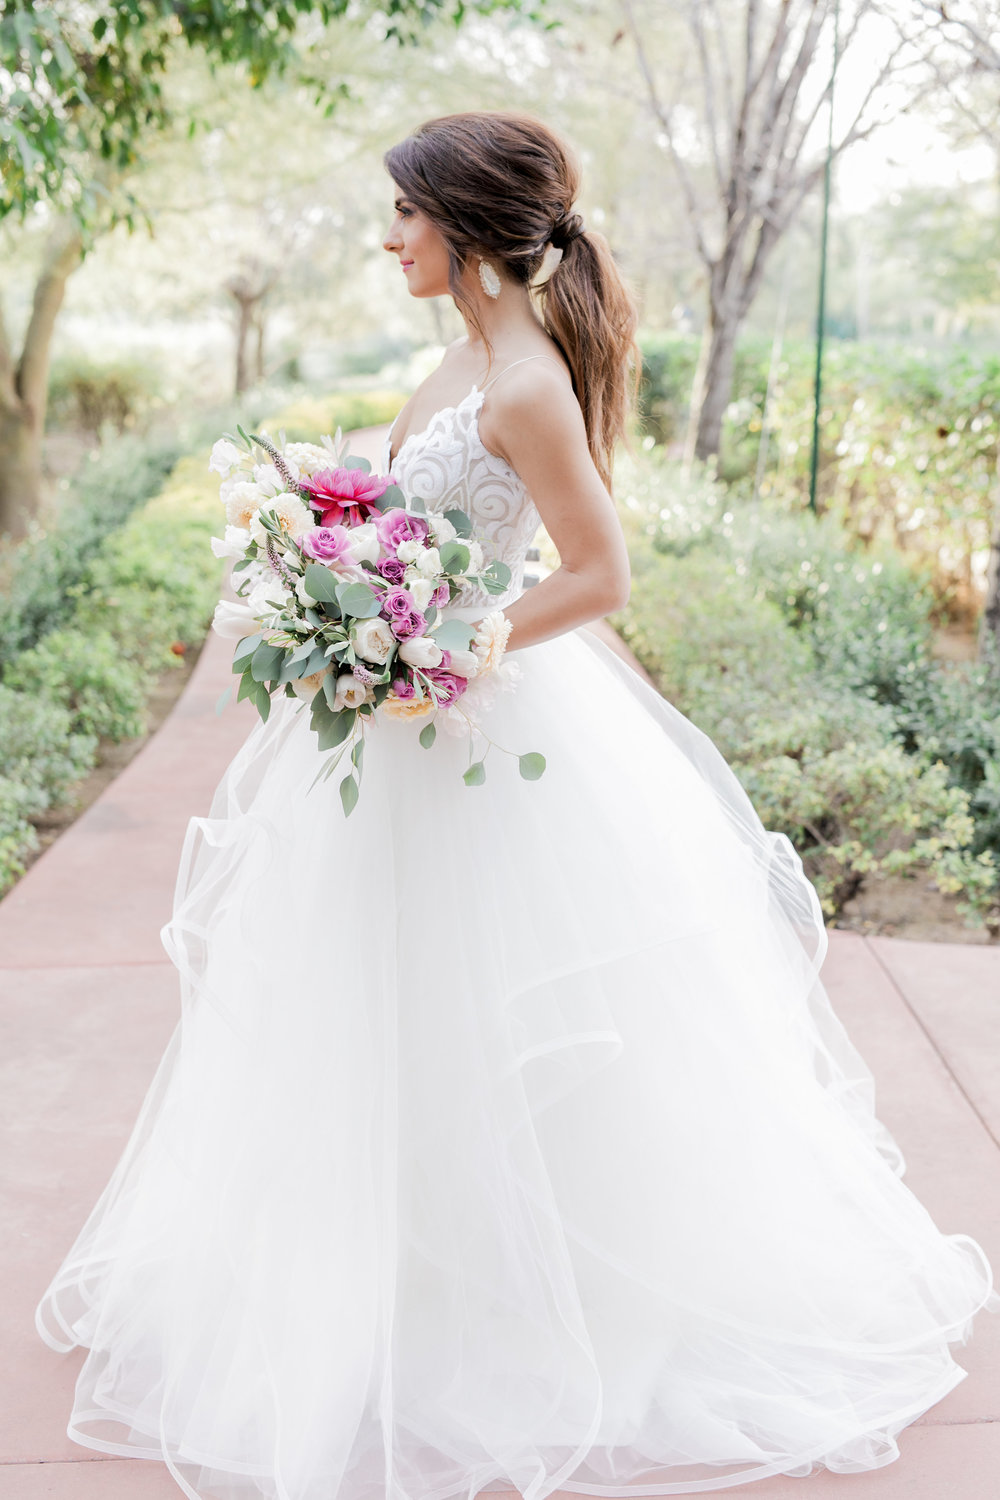 arizona-bride-february-wedding.jpg